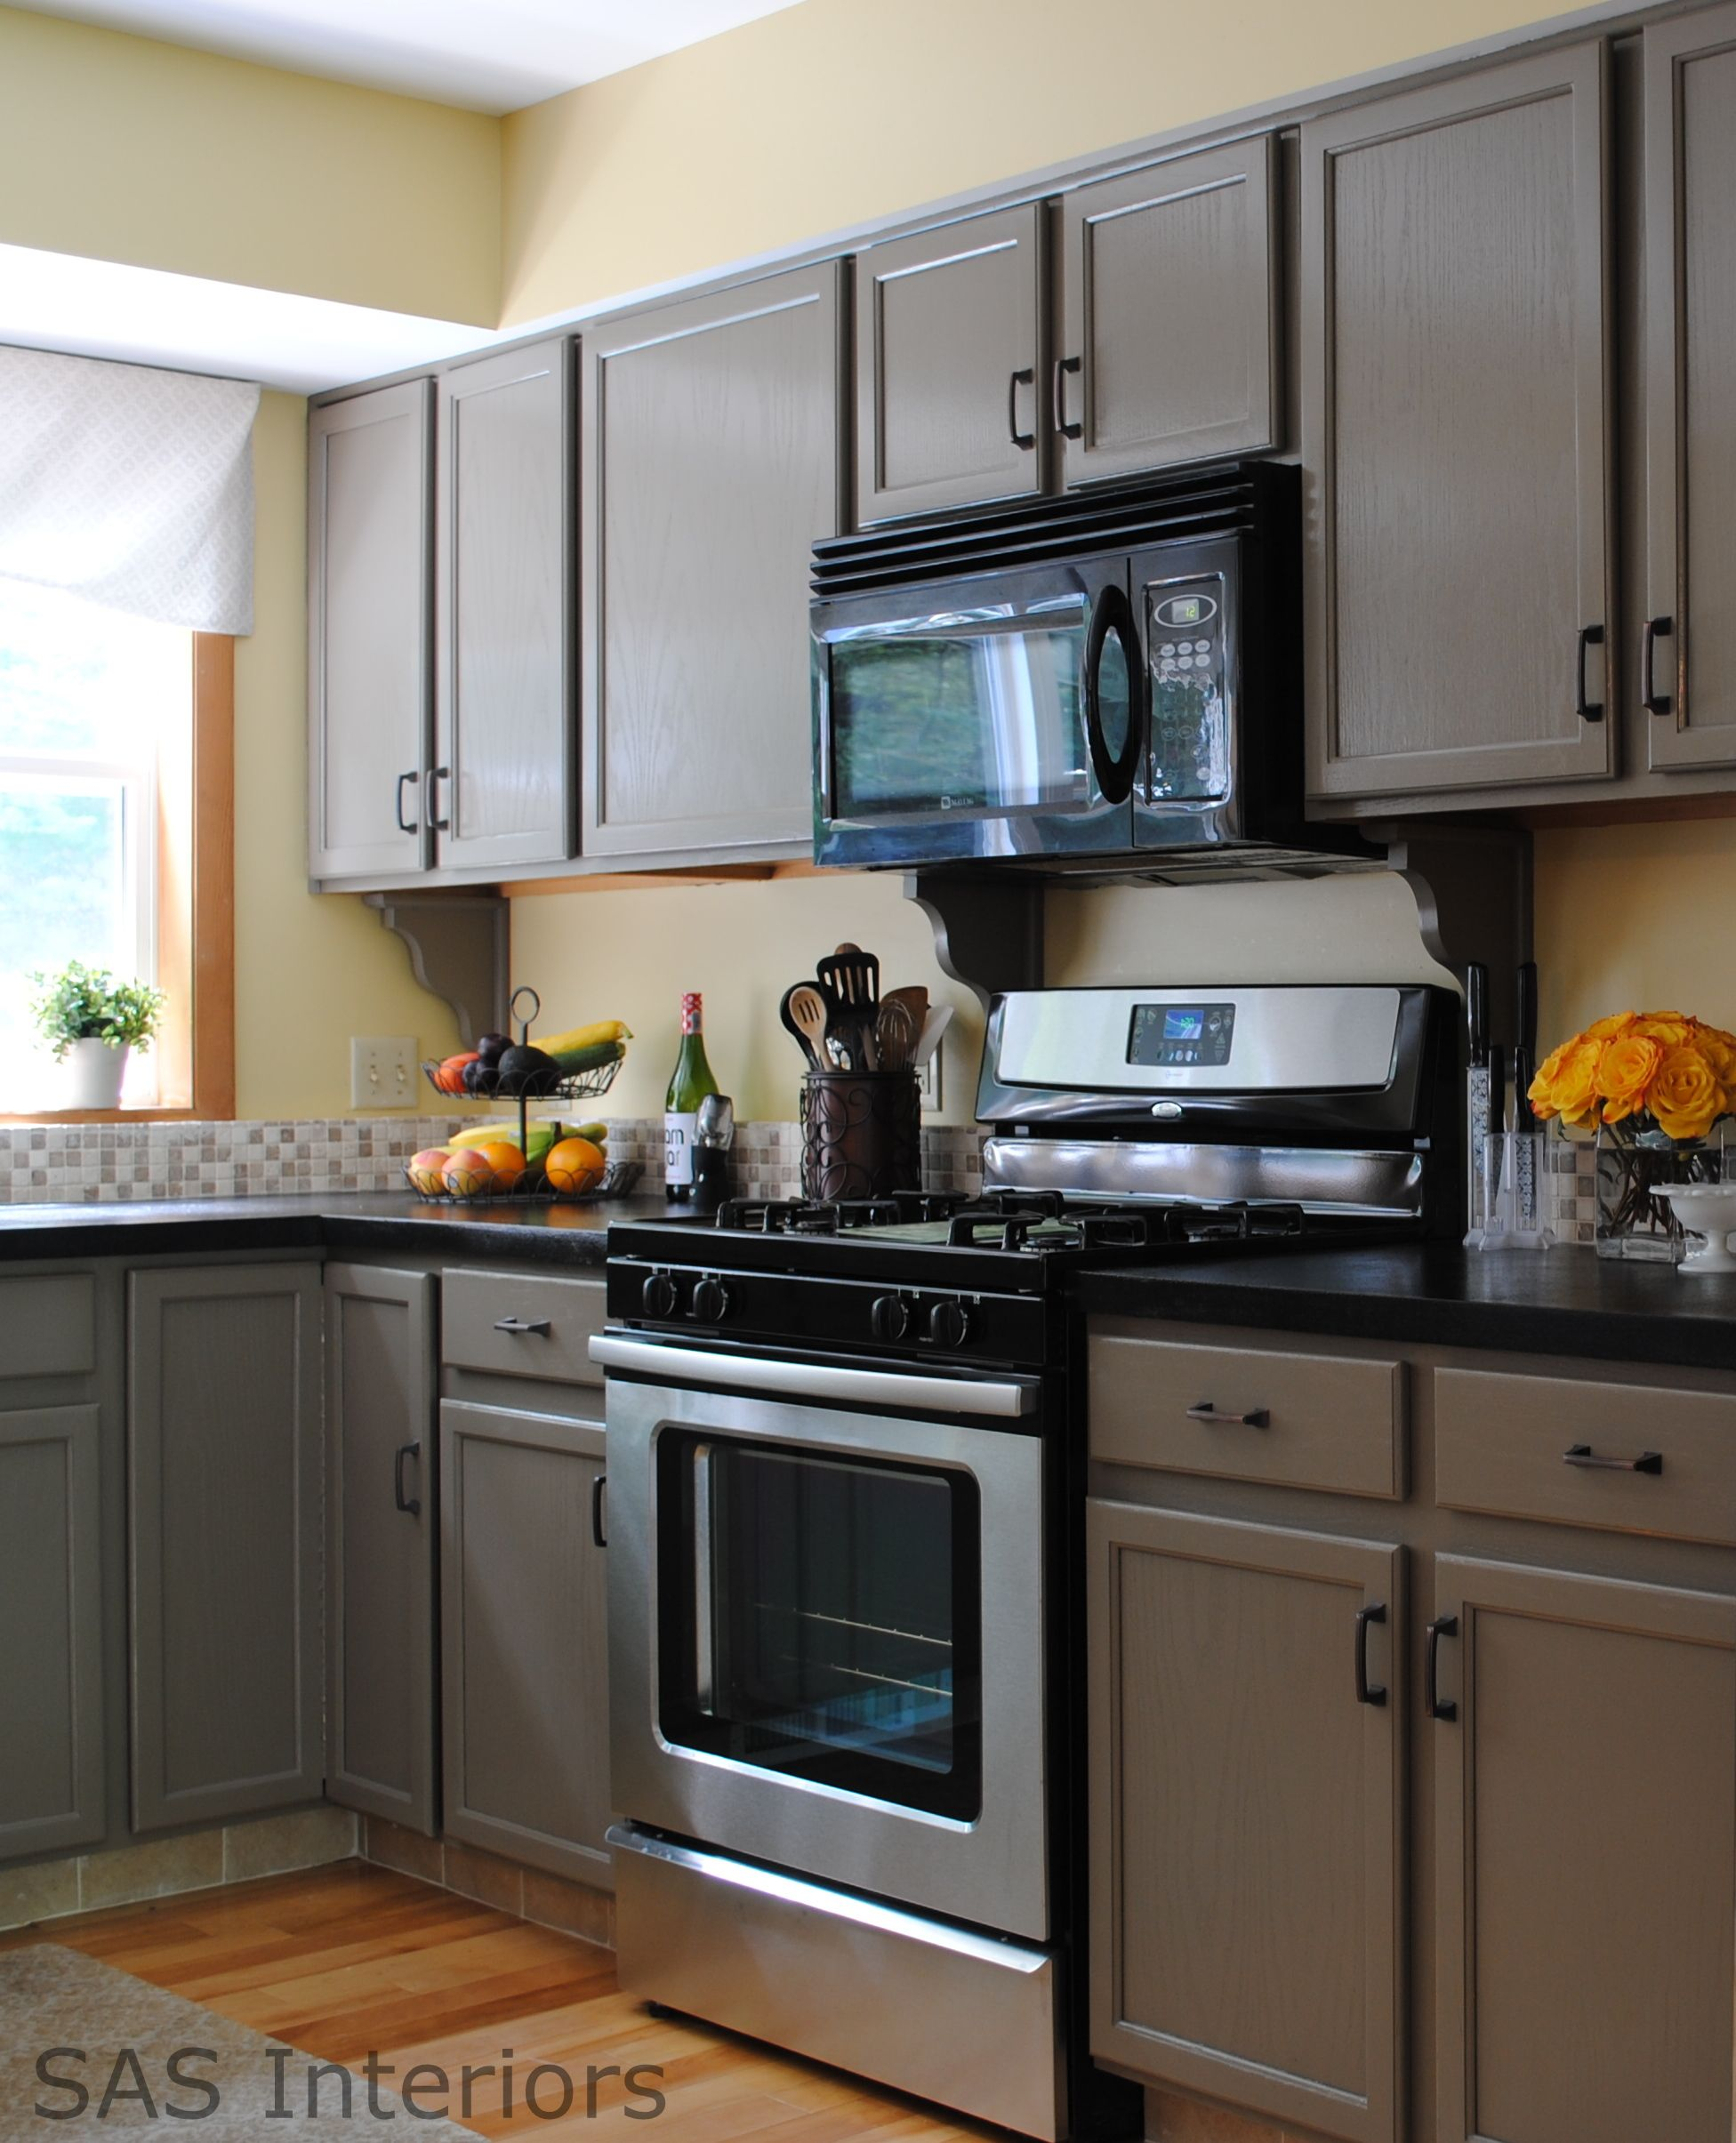 A complete doityourself Kitchen Makeover using Benjamin